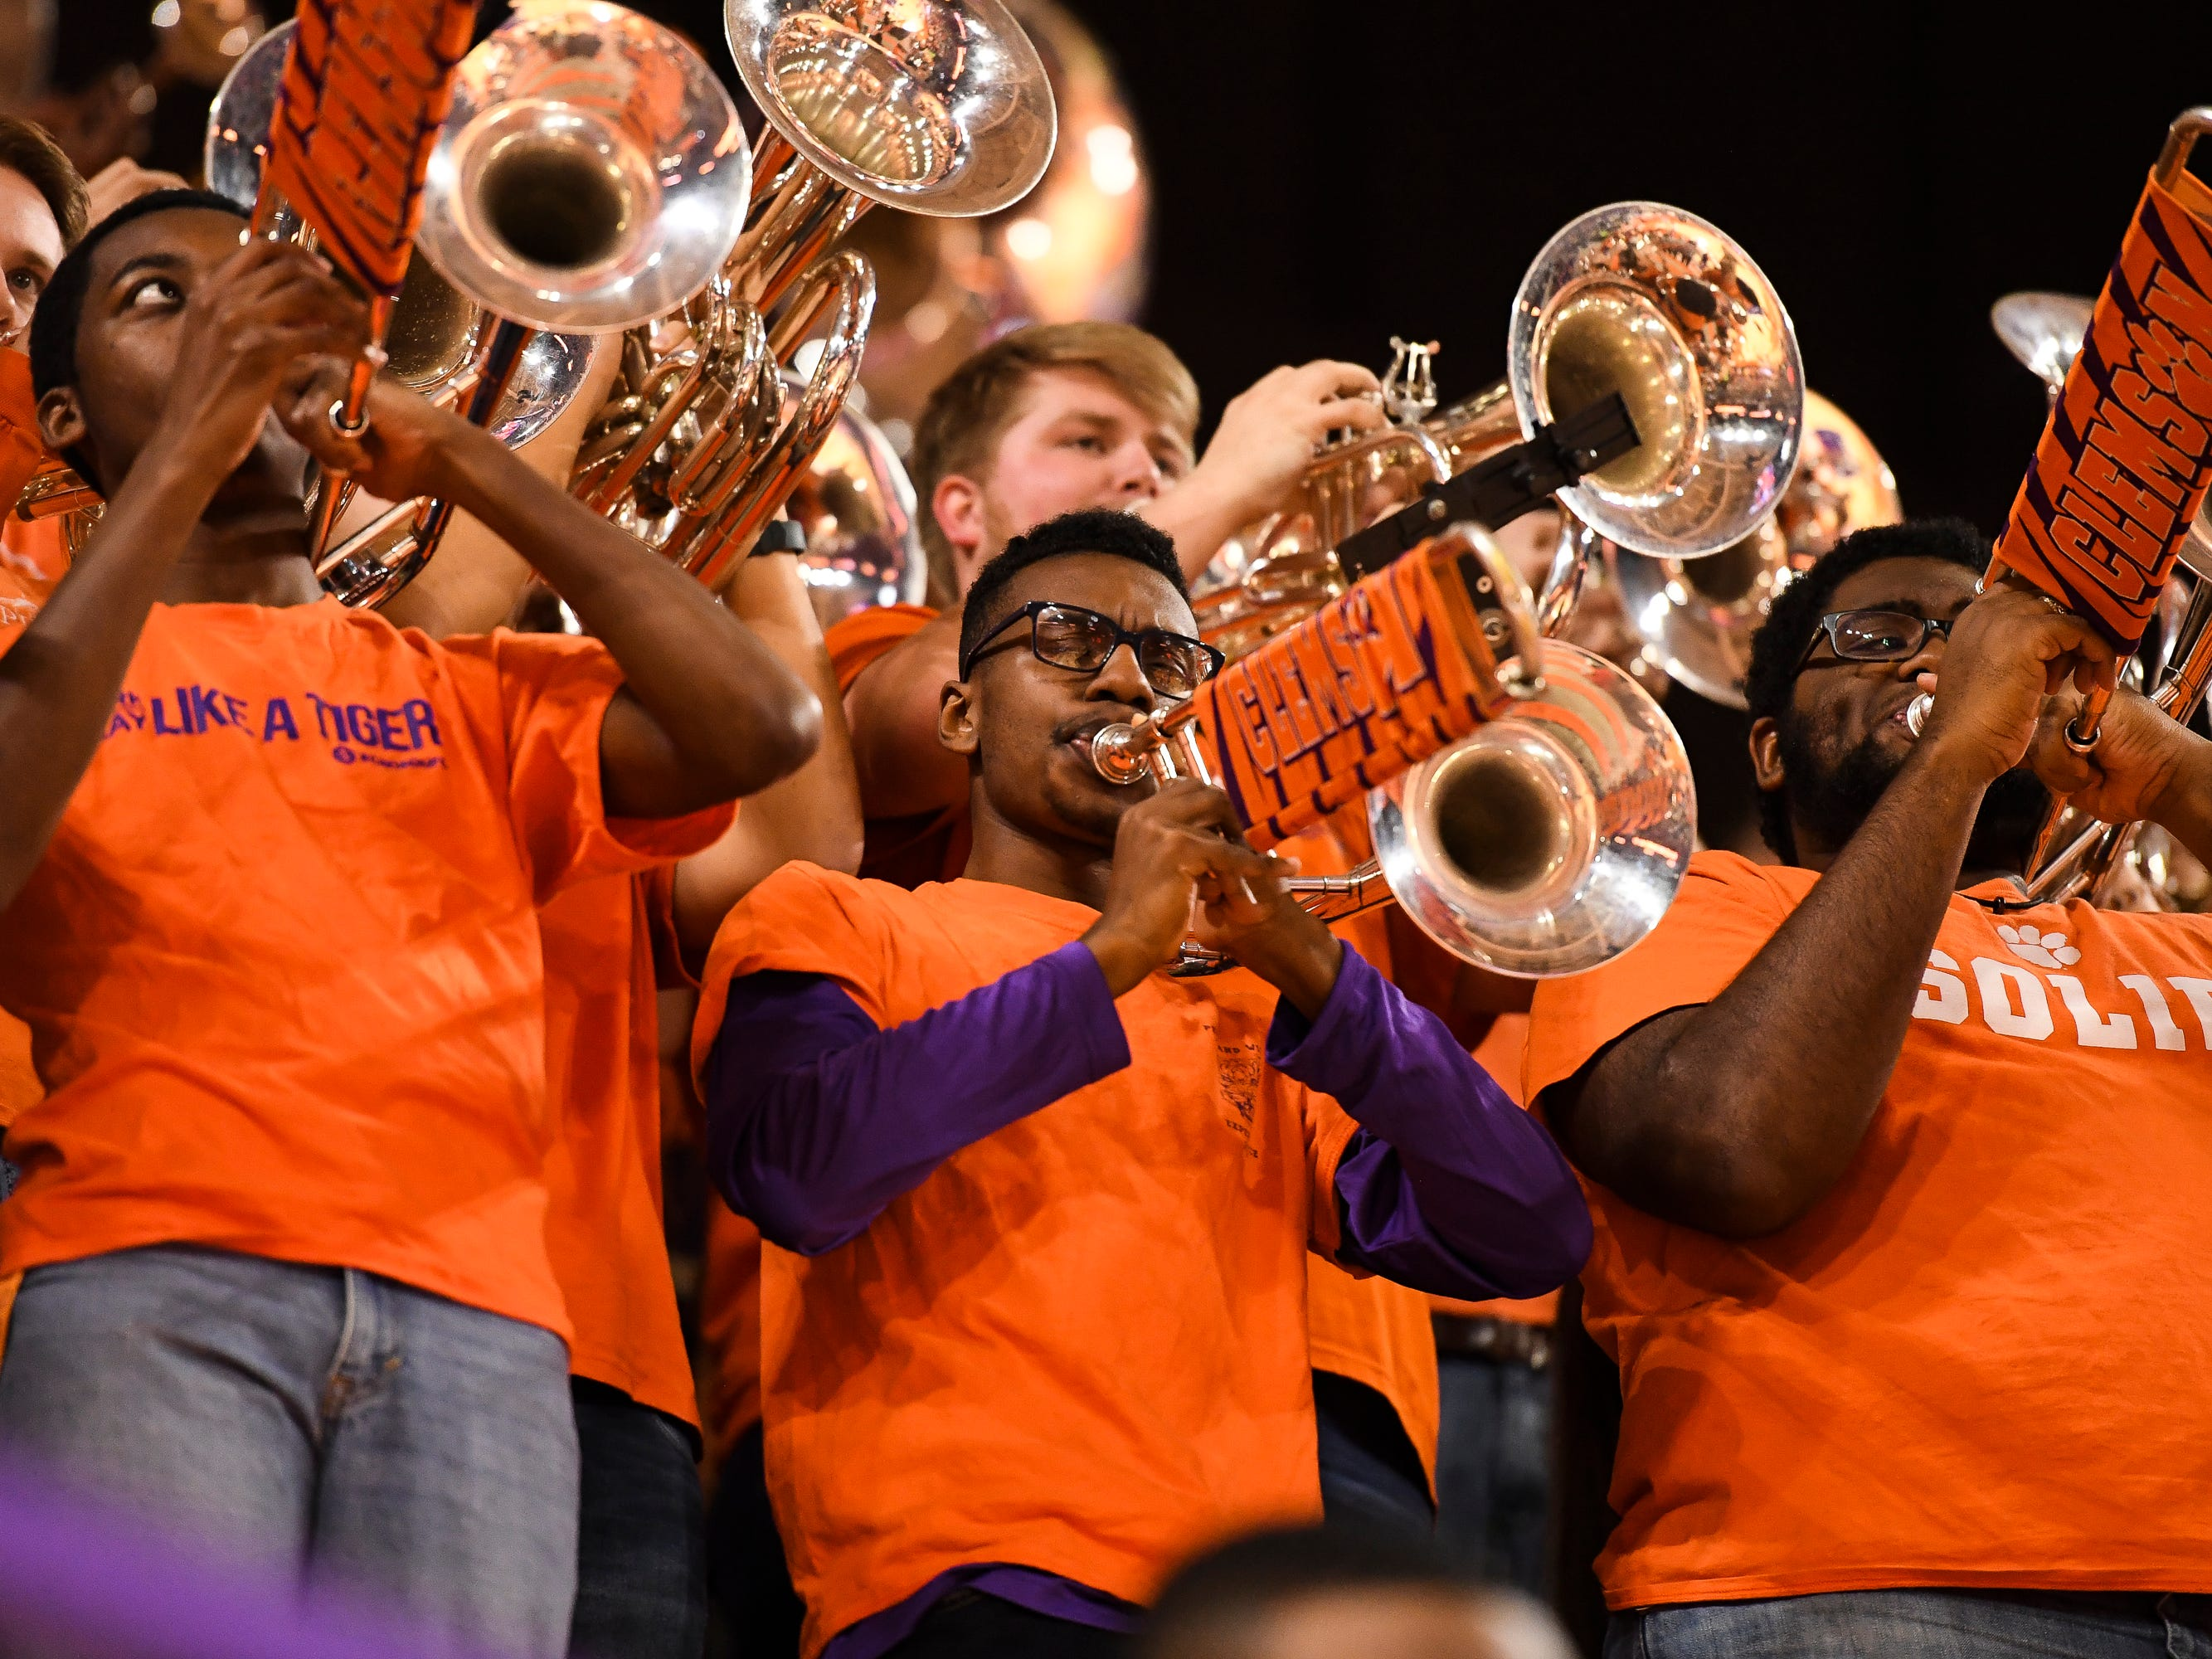 The Clemson pep band performs during their game against Pittsburgh at Littlejohn Coliseum Tuesday, Jan. 29, 2019.